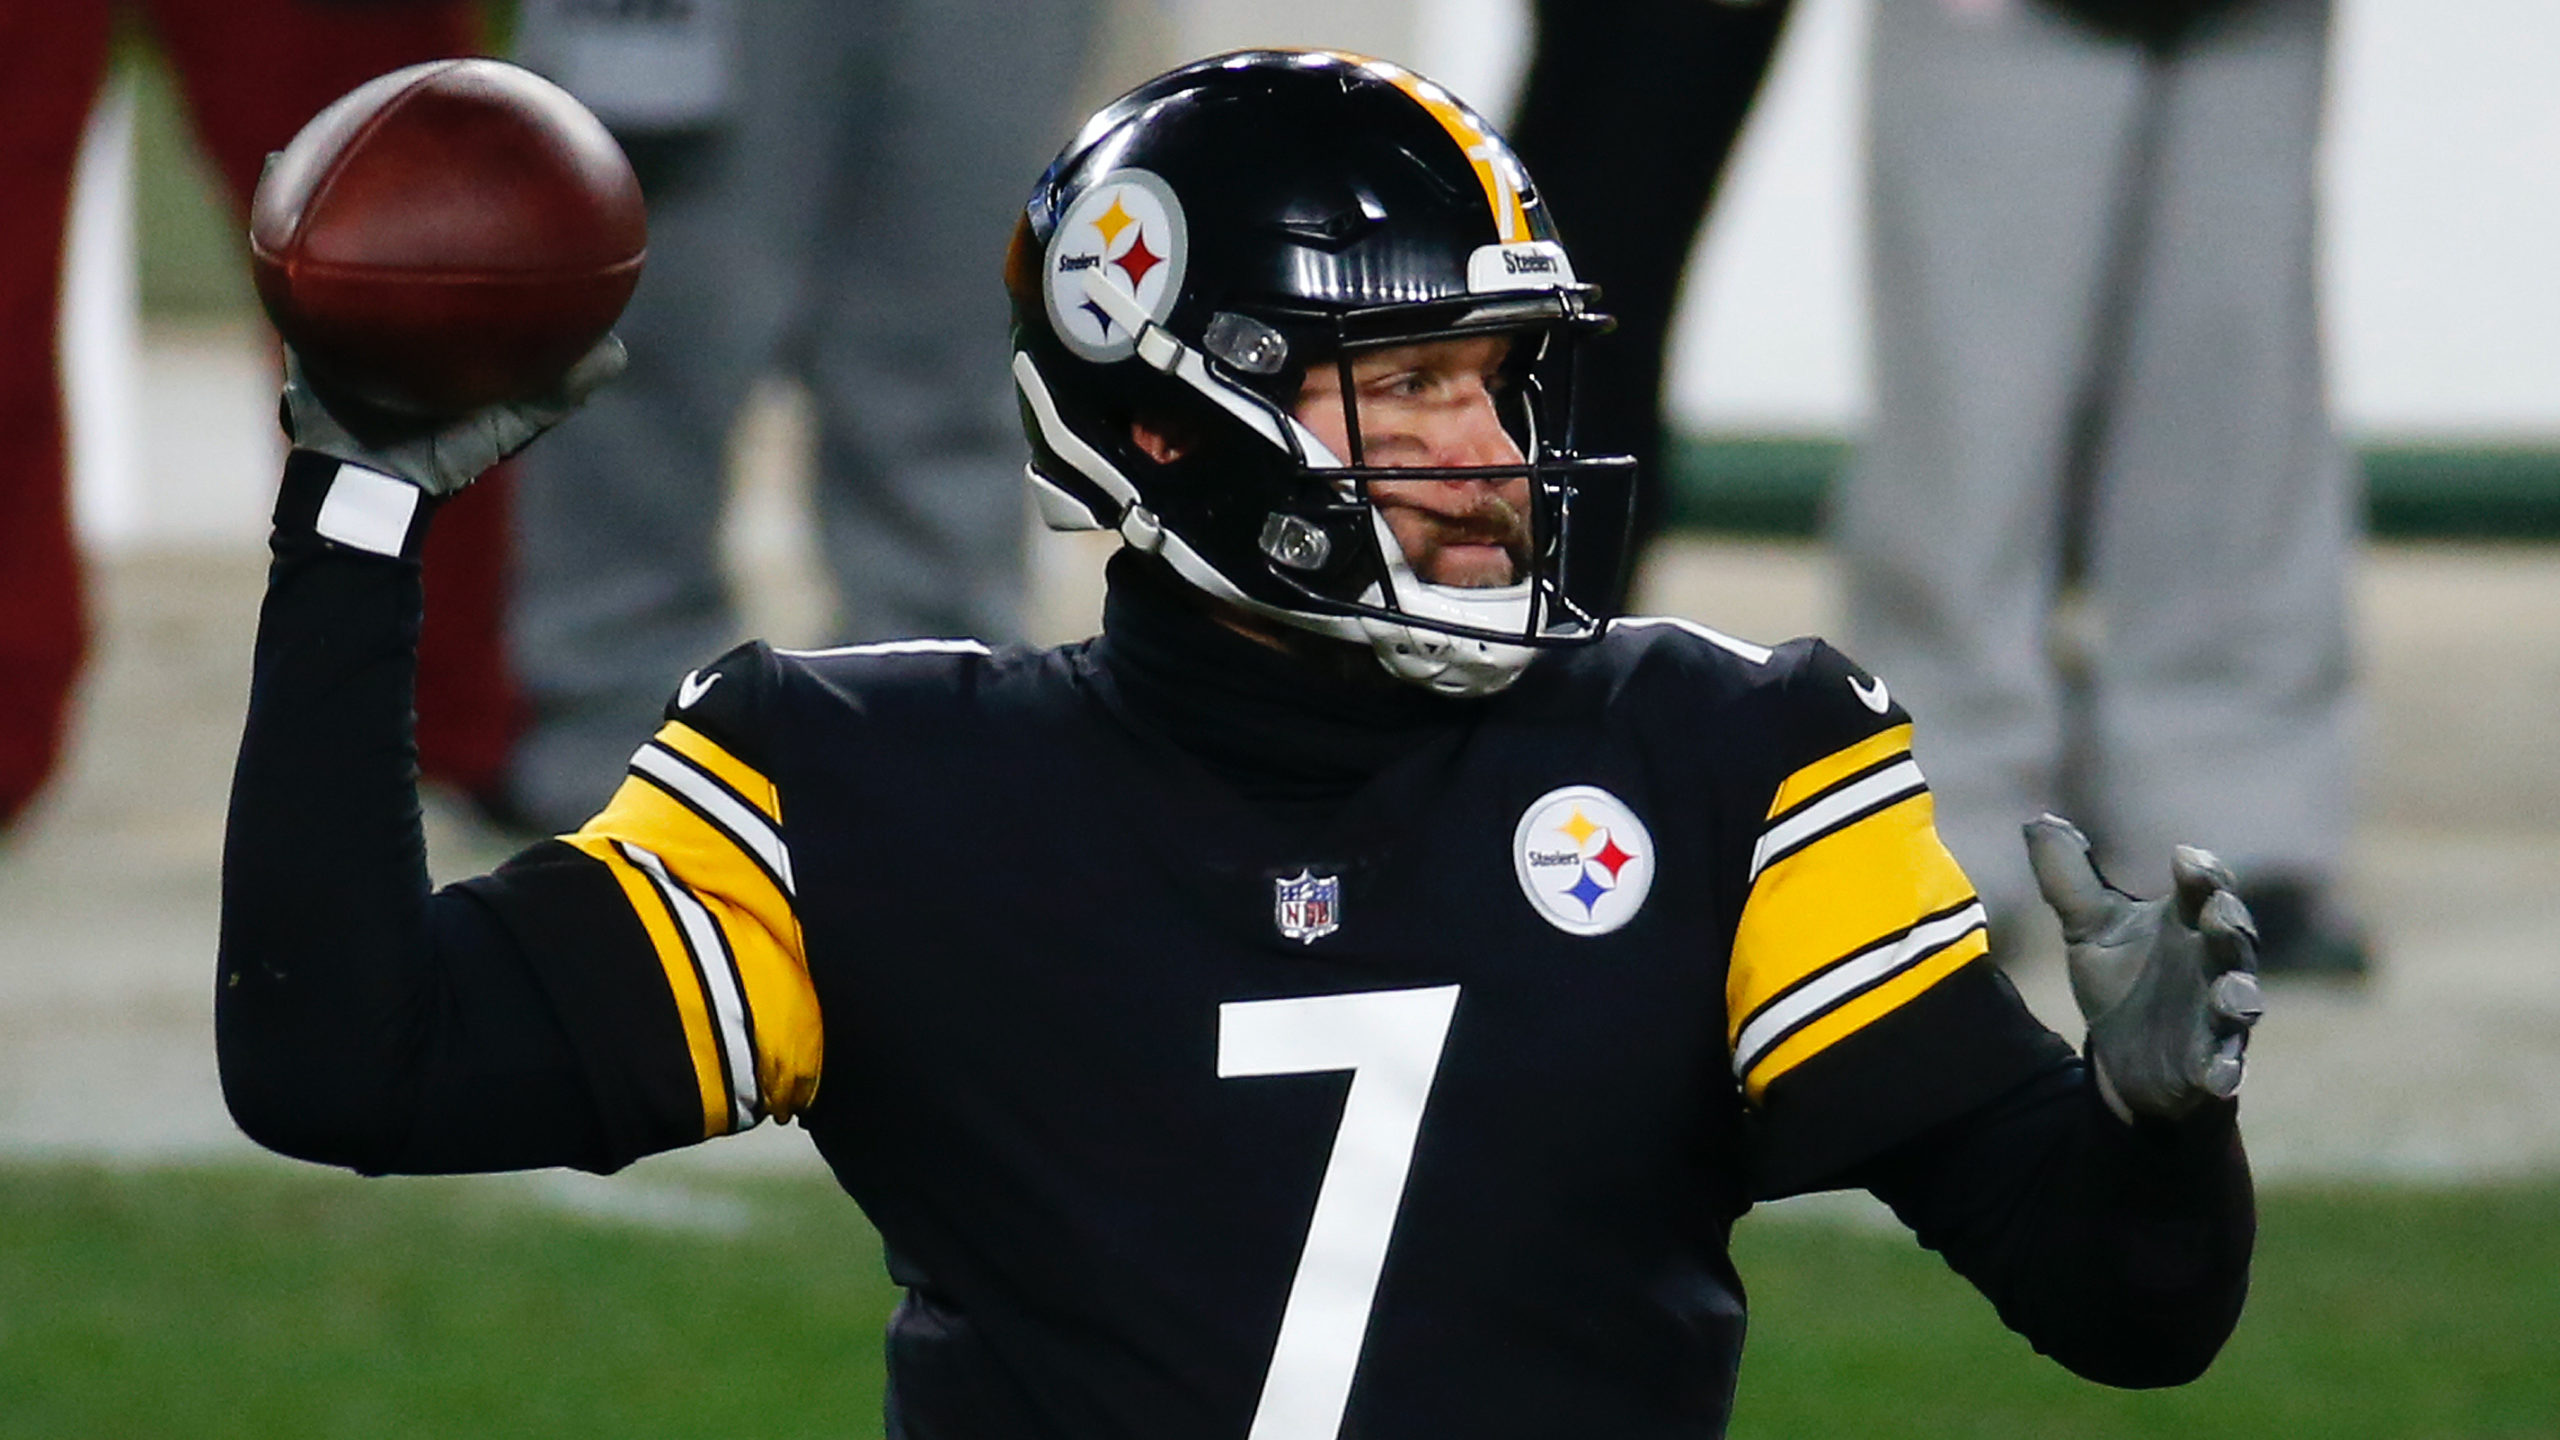 Sunday NFL Playoffs Promos: Bet $20, Win $125 if Big Ben Throws for 7+ Yards, More! article feature image